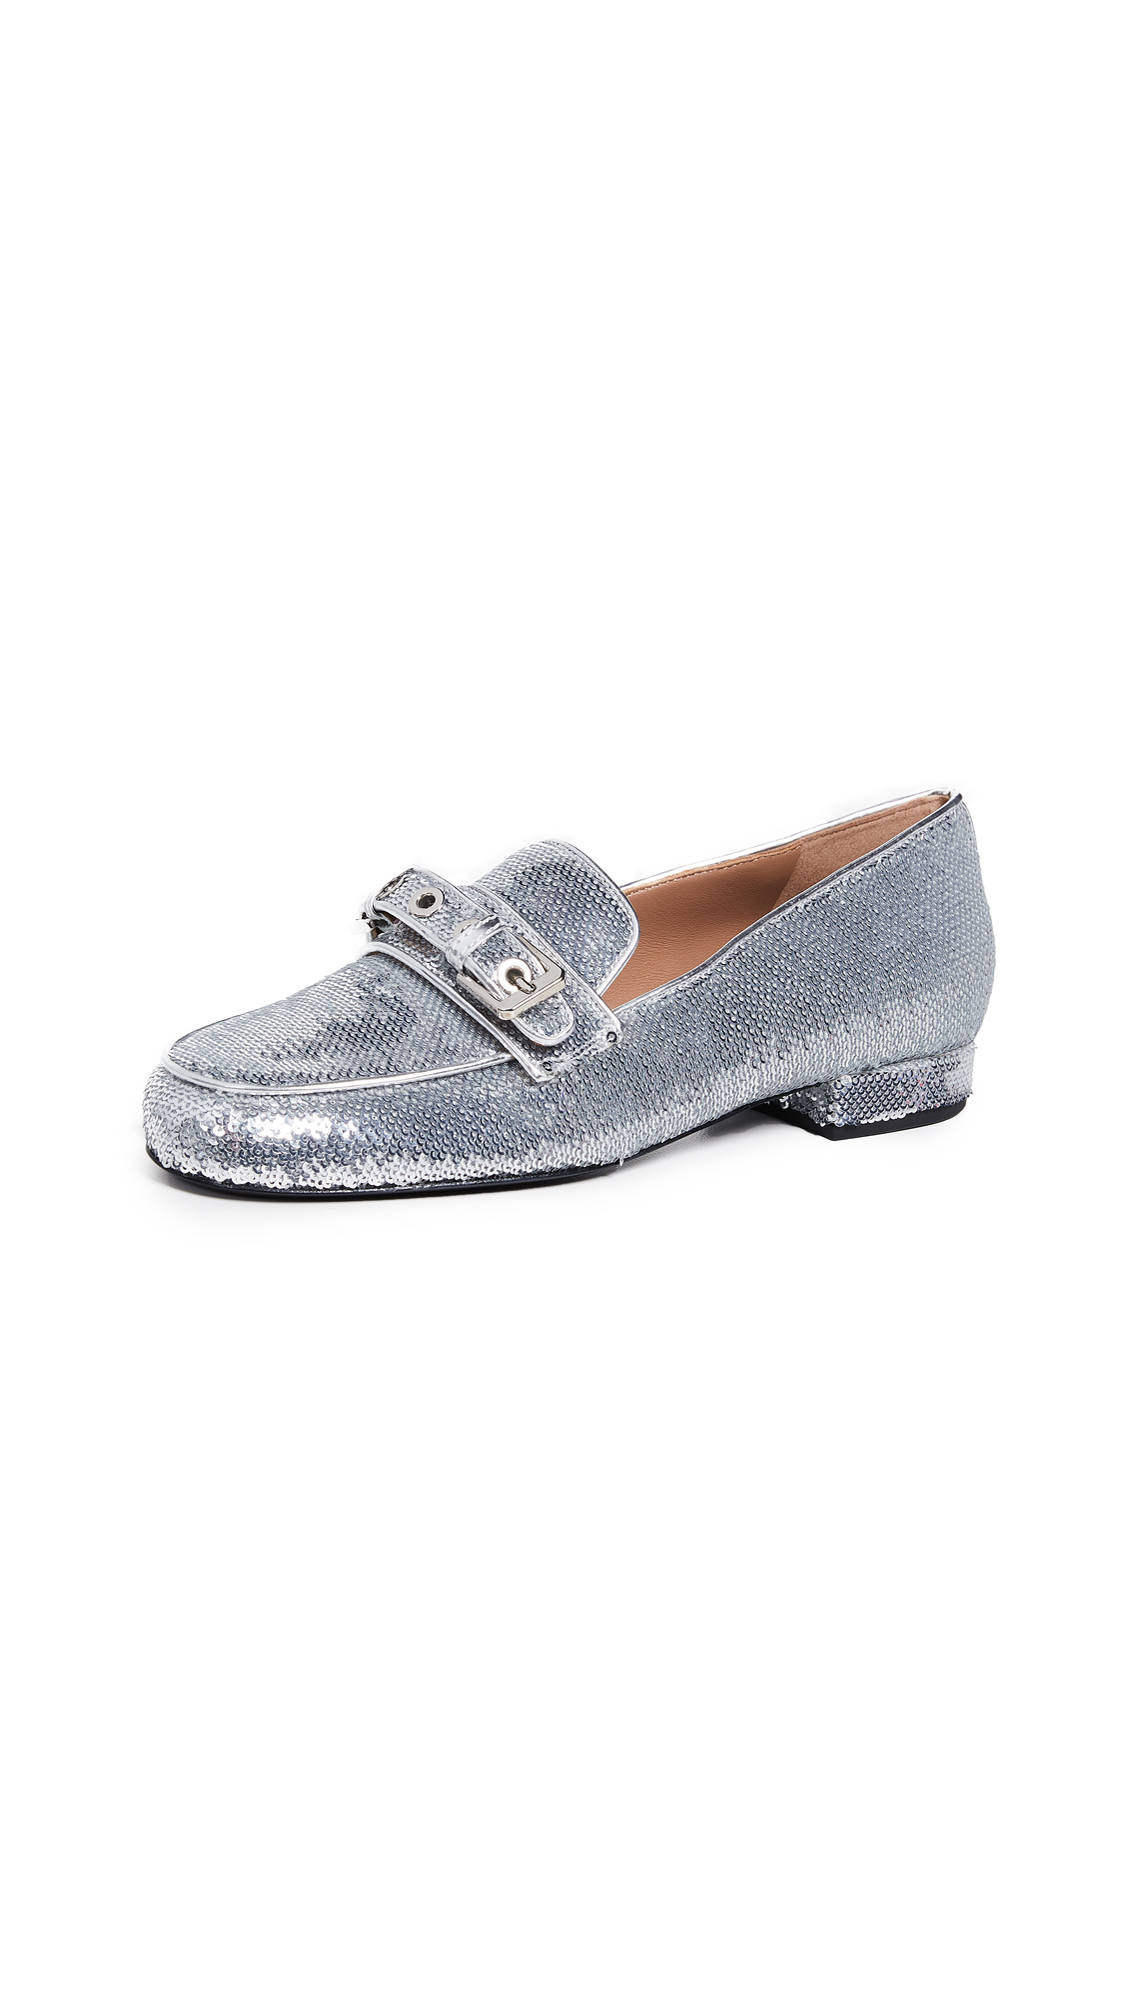 Laurence Dacade Rufus Loafers - Silver